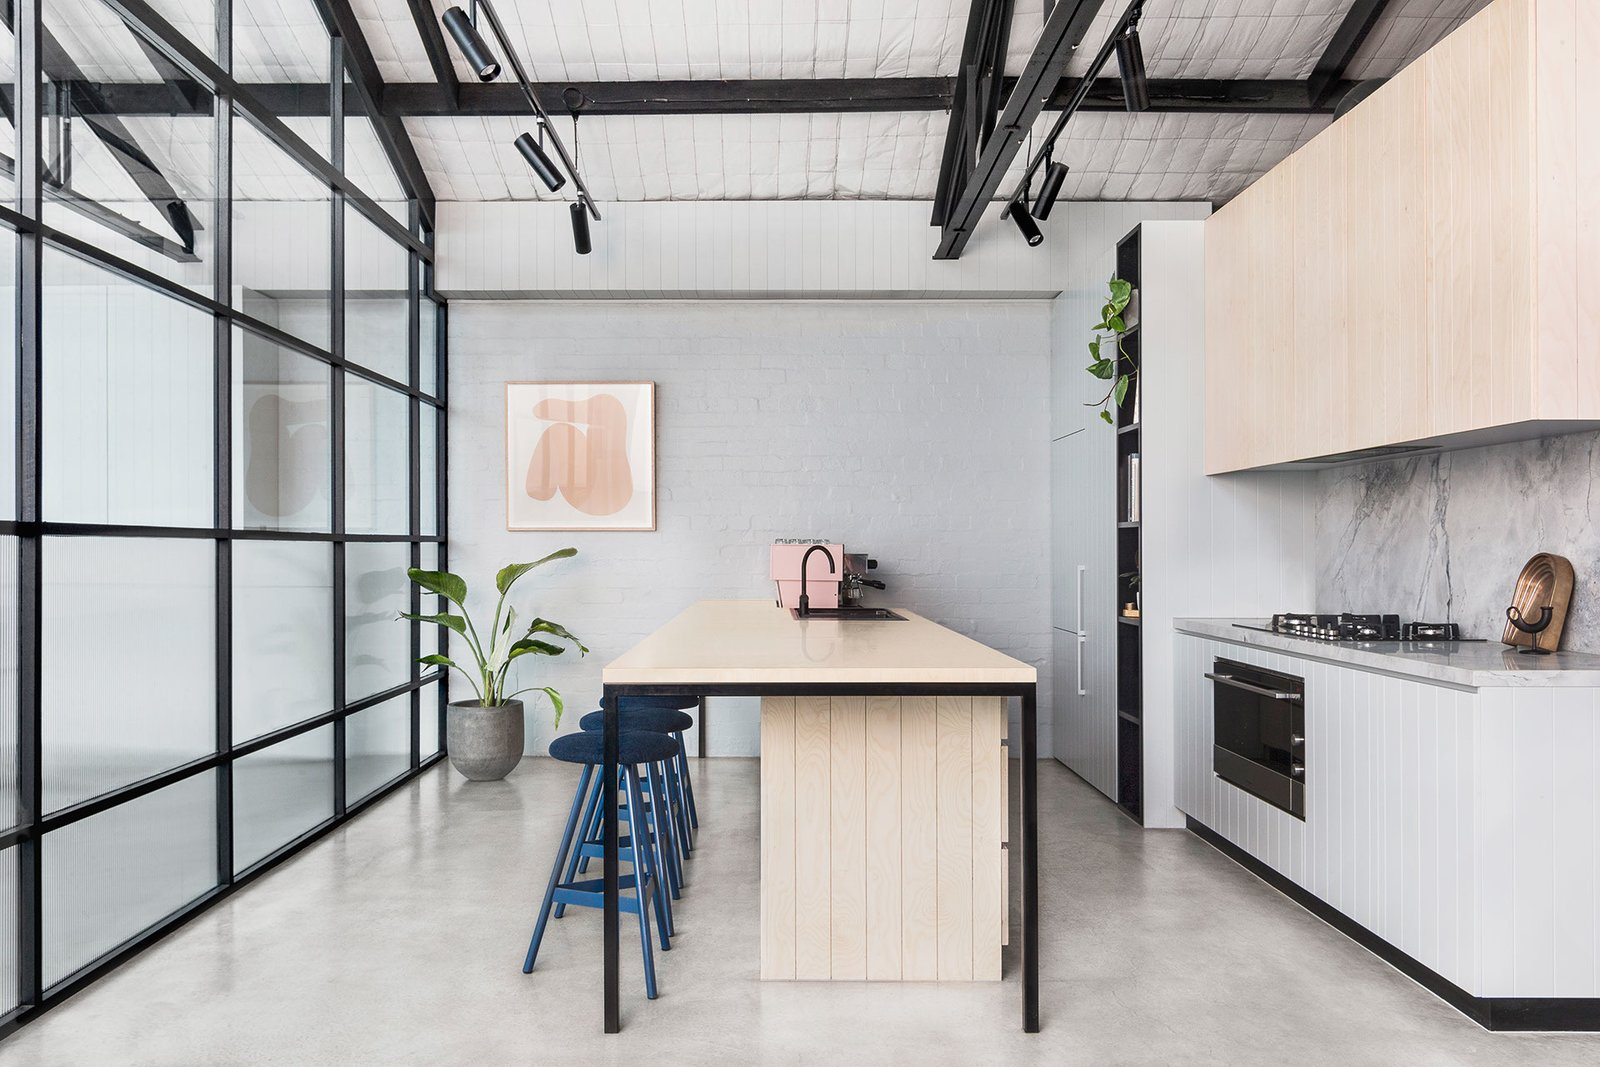 Kitchen, Marble Counter, Wood Cabinet, Concrete Floor, Track Lighting, Wall Oven, Range, Drop In Sink, and Marble Backsplashe  Photo 12 of 14 in An Art Deco Warehouse in Melbourne Is Converted Into a Shared Office Space